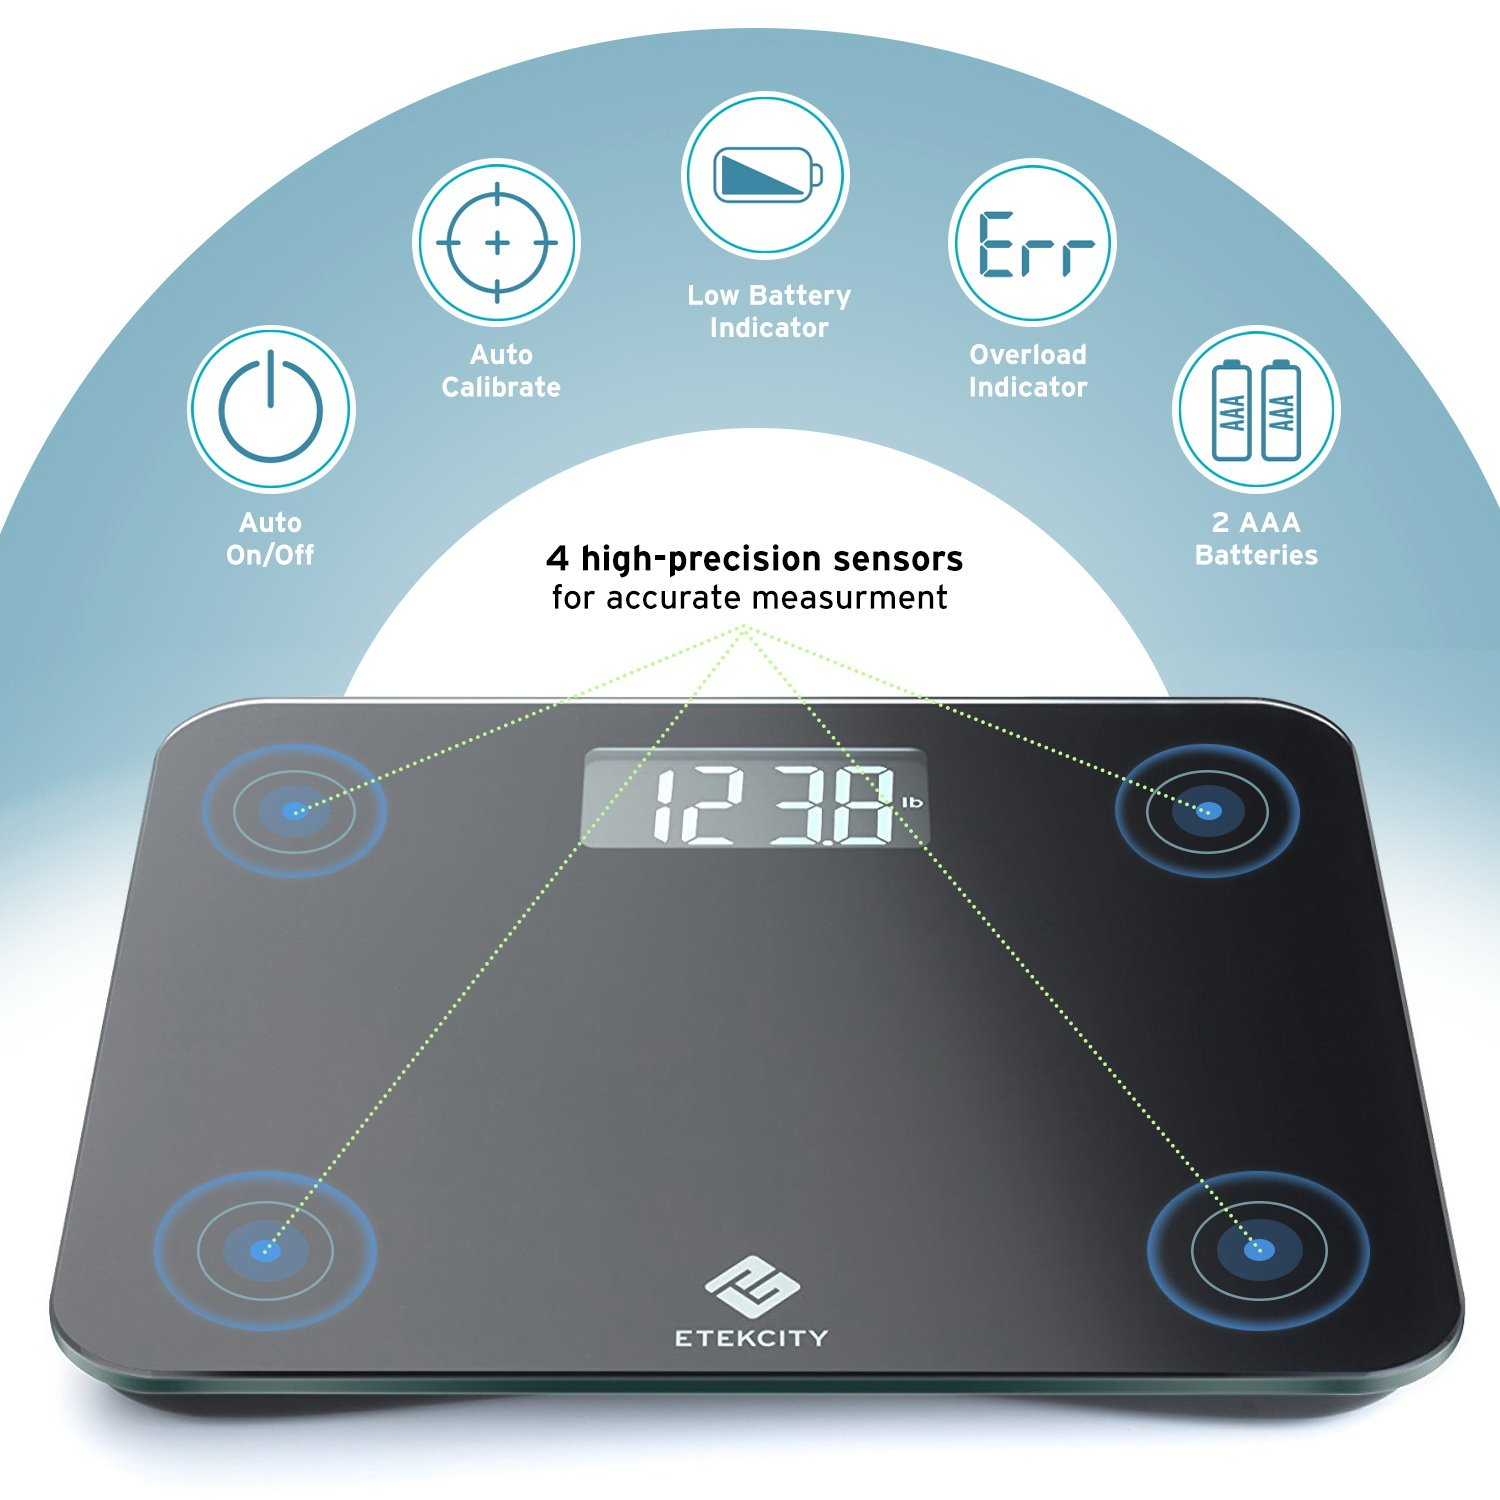 Etekcity Digital Body Weight Bathroom Scale with Step-On Technology, 440 Pounds, Body Tape Measure Included (Black) EB441OB by Etekcity (Image #5)